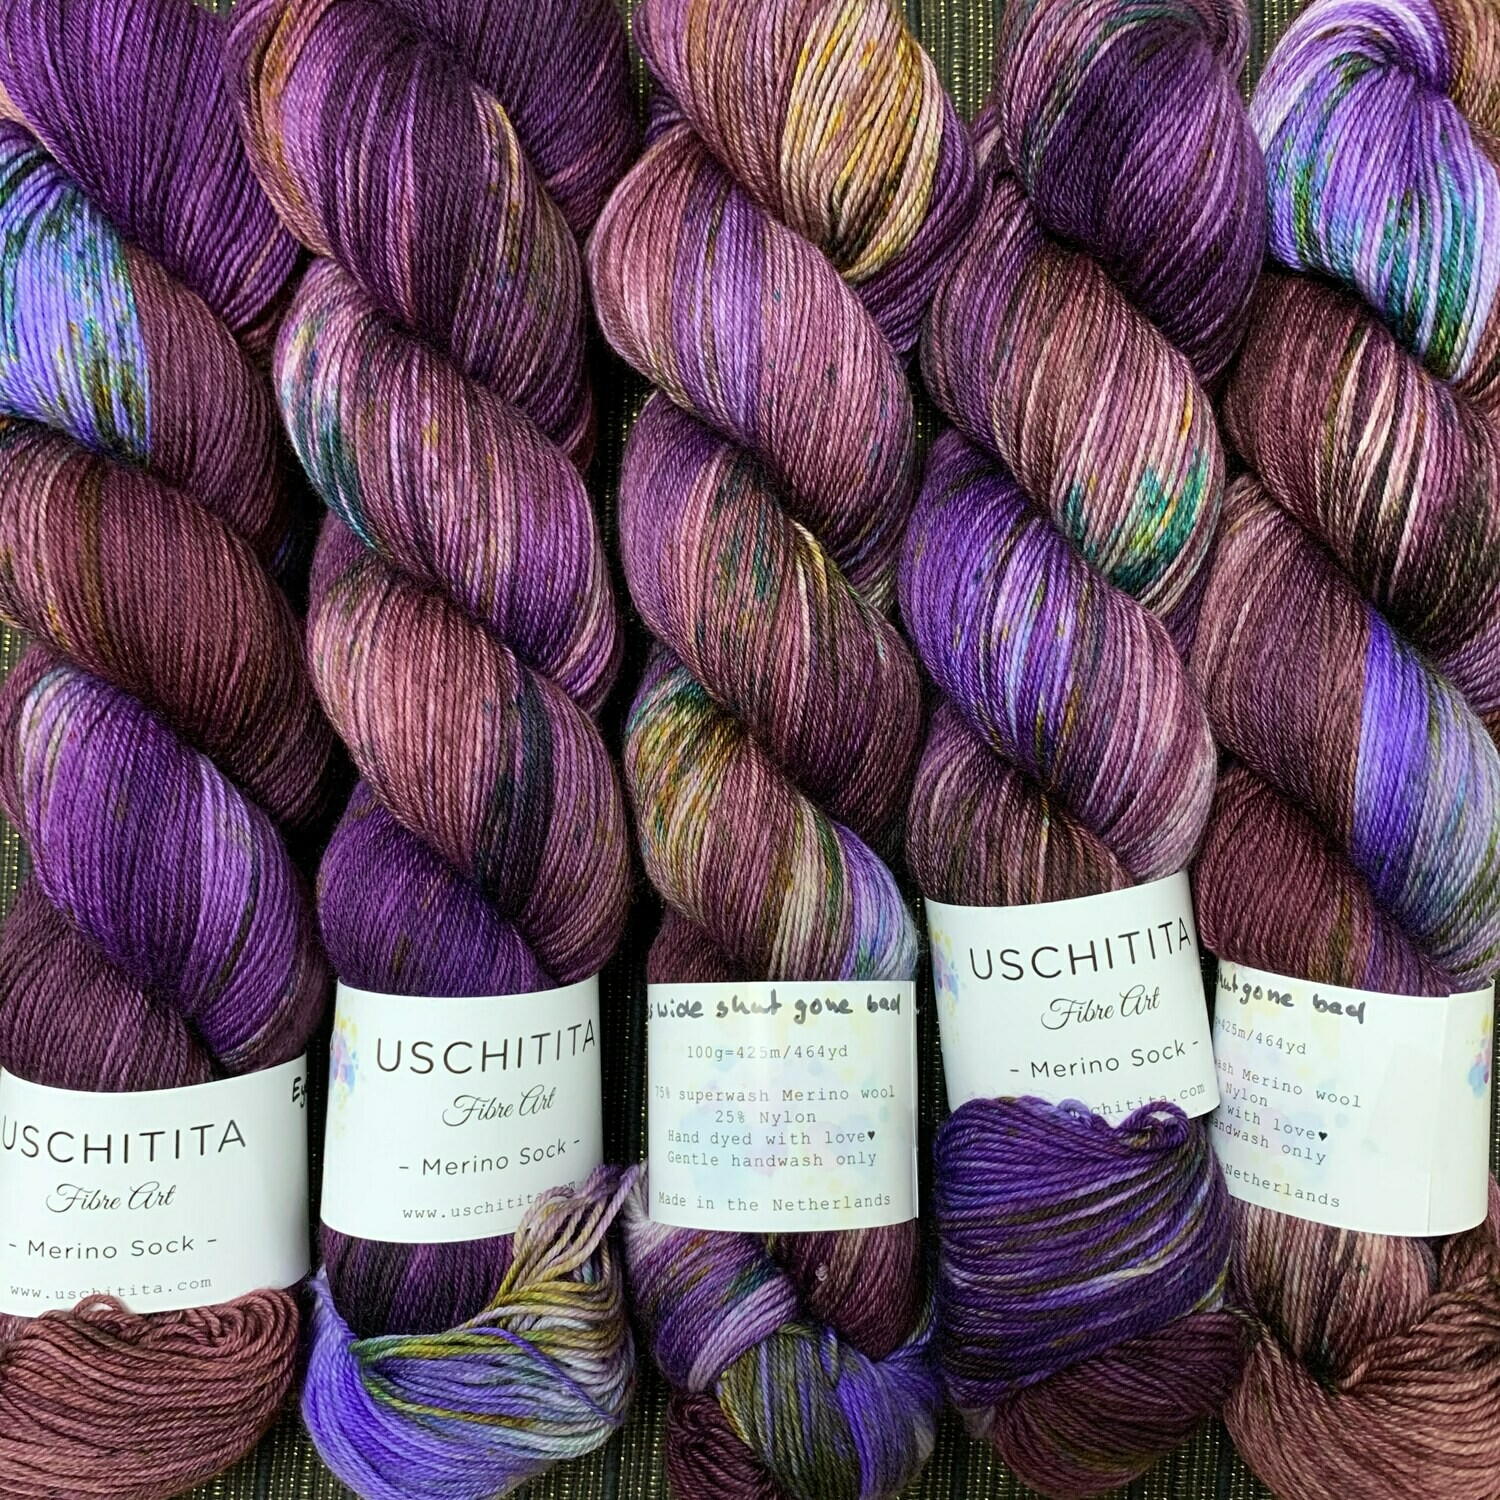 Uschitita Sock Yarn Eyes wide shut gone bad